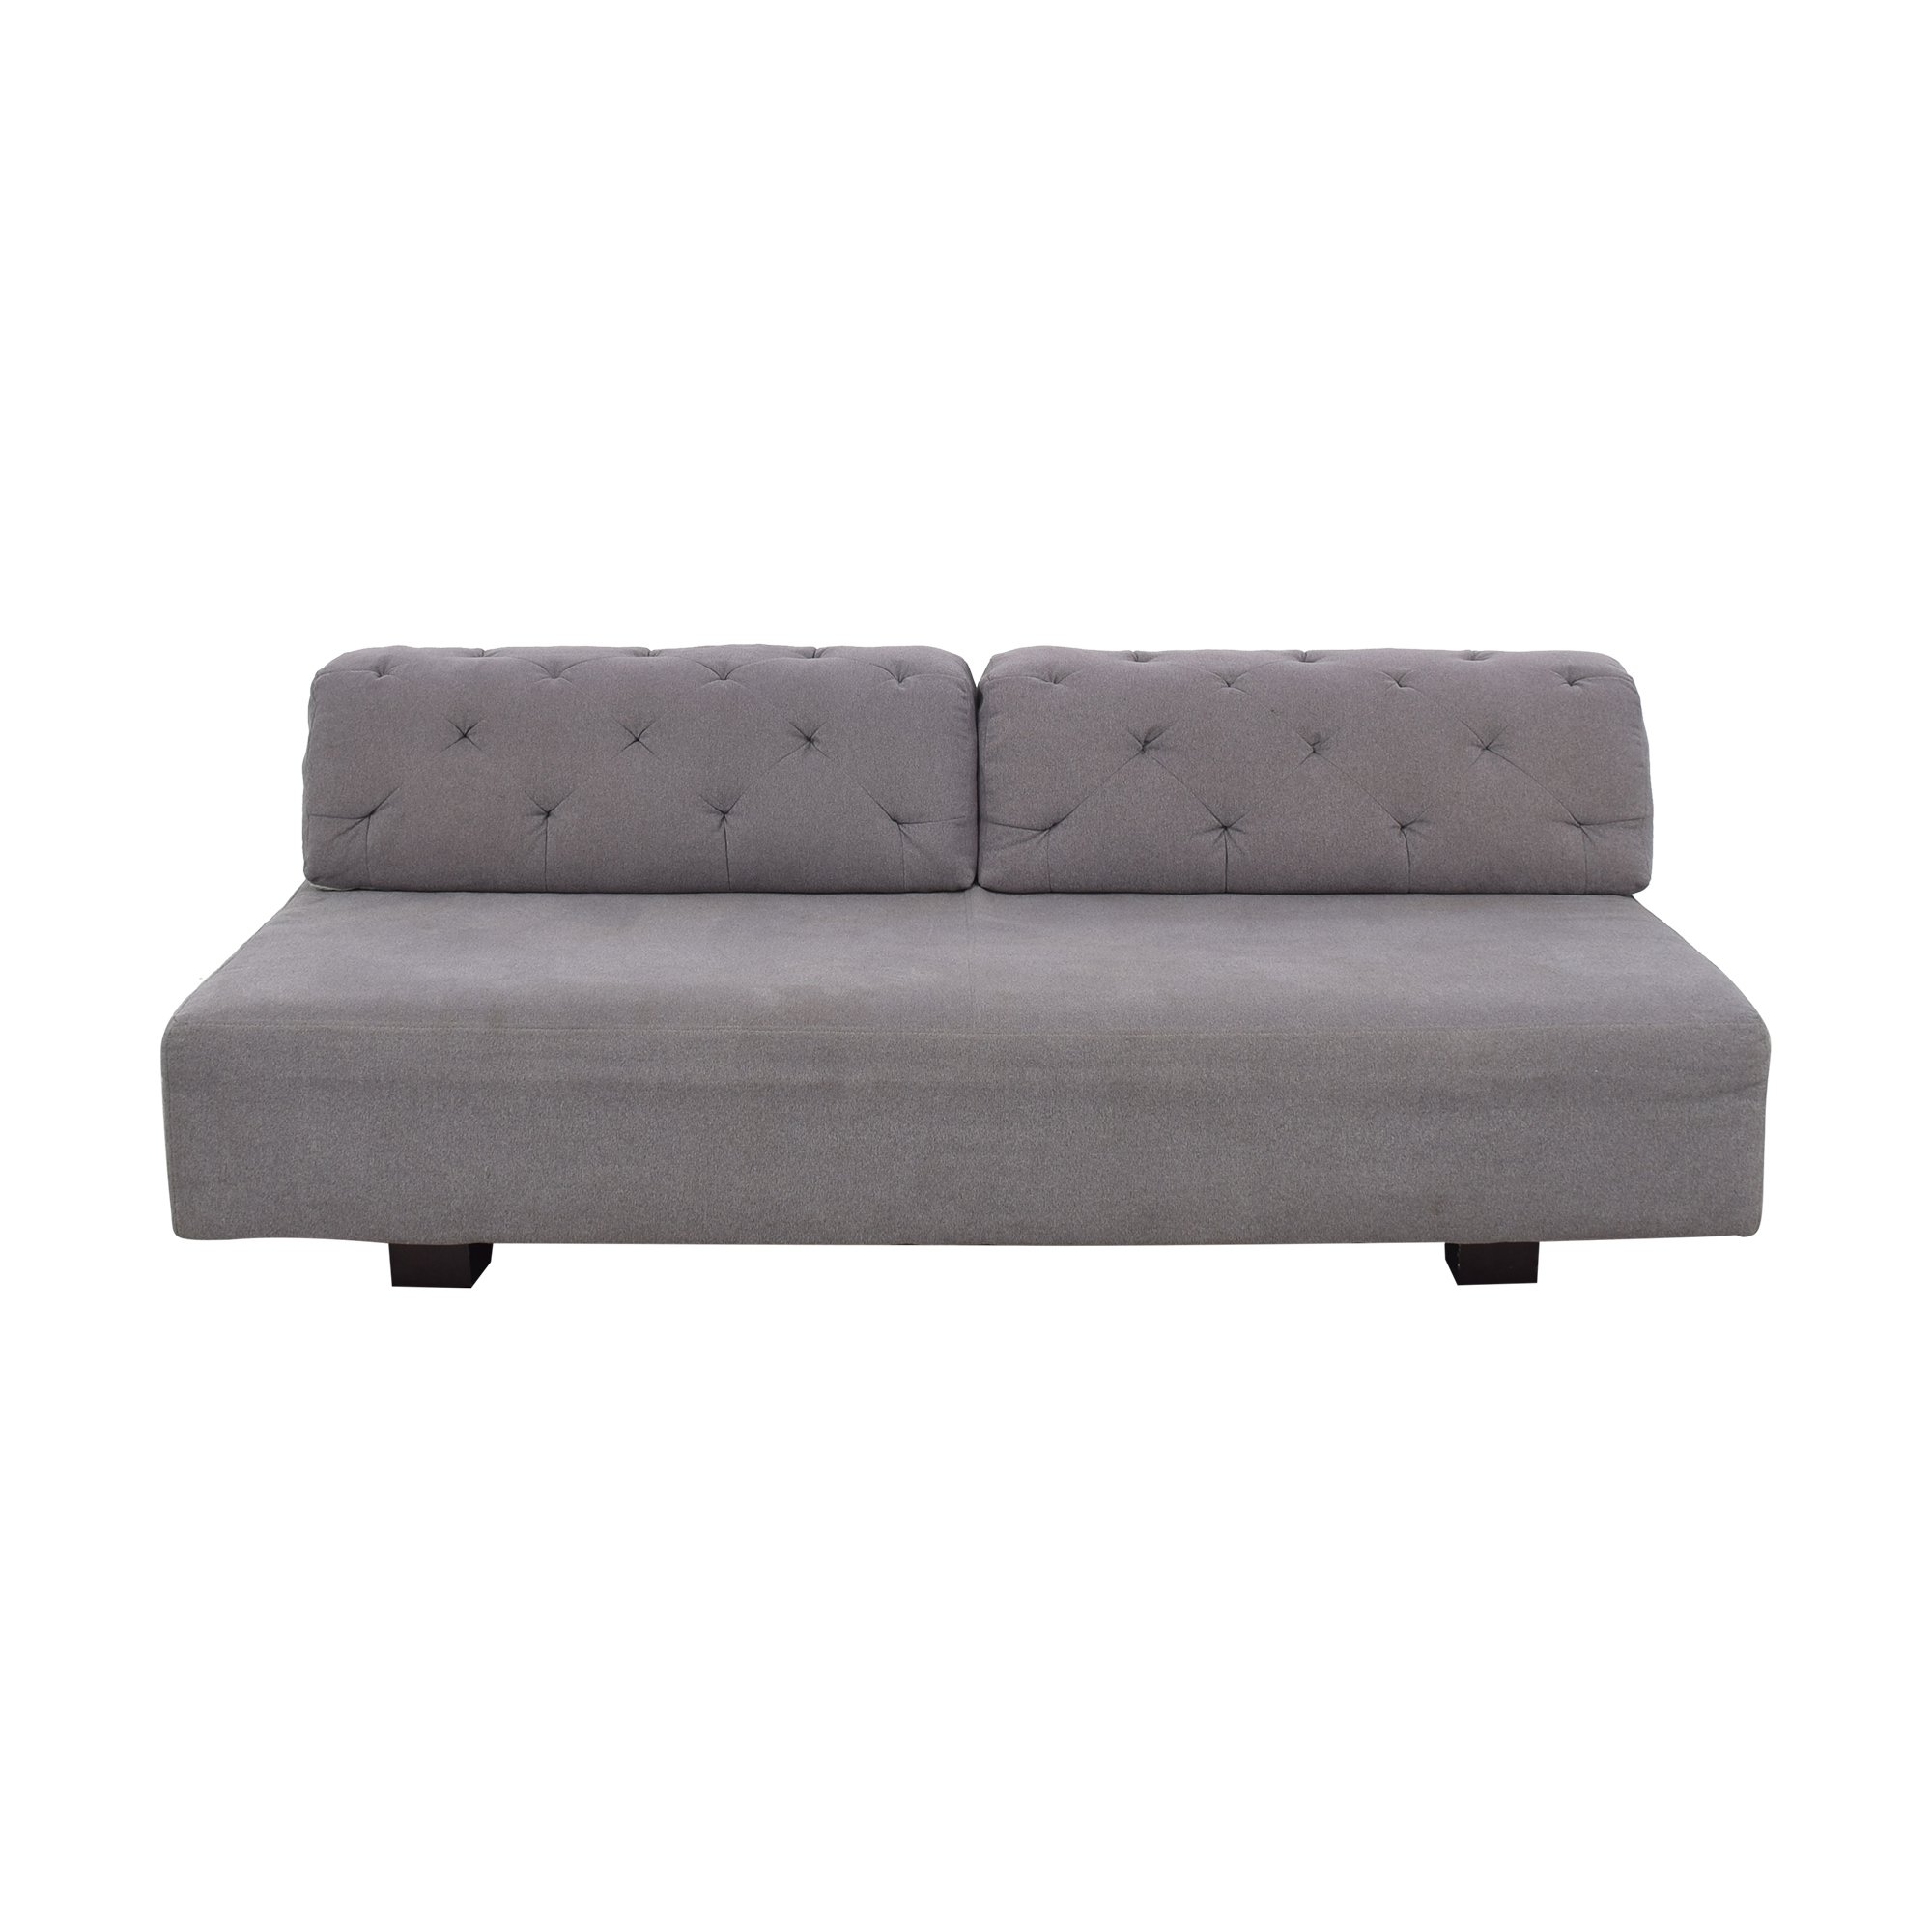 West Elm West Elm Tillary Sofa with Tufted Back Cushions nyc